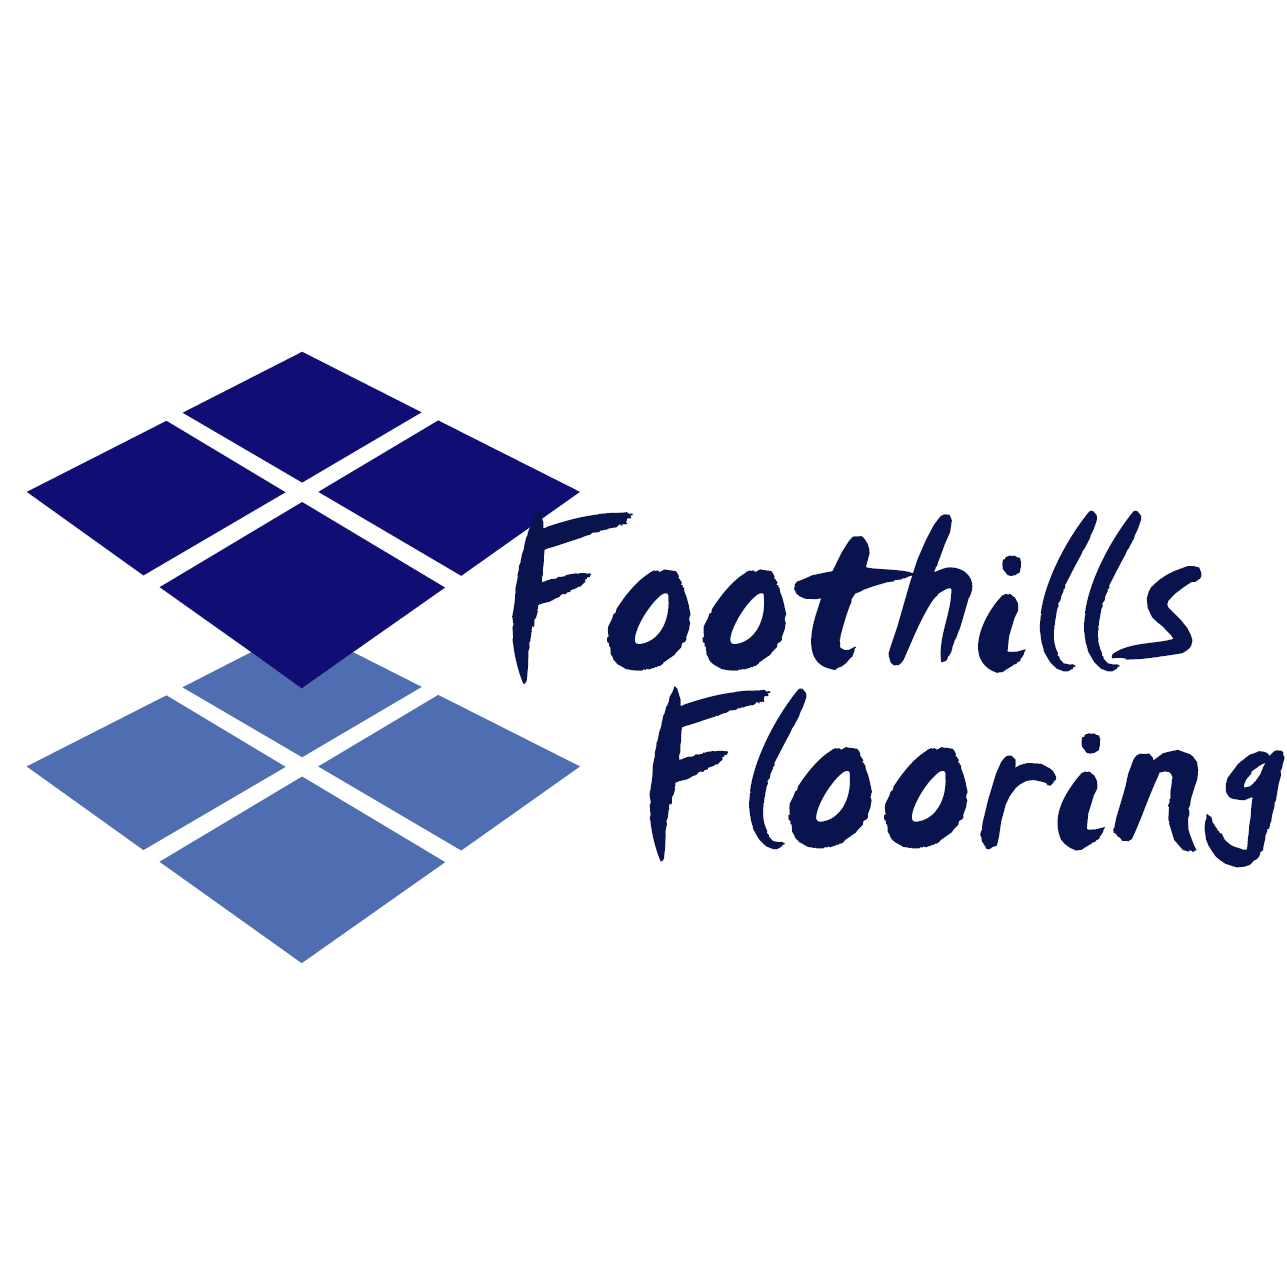 Foothills Flooring